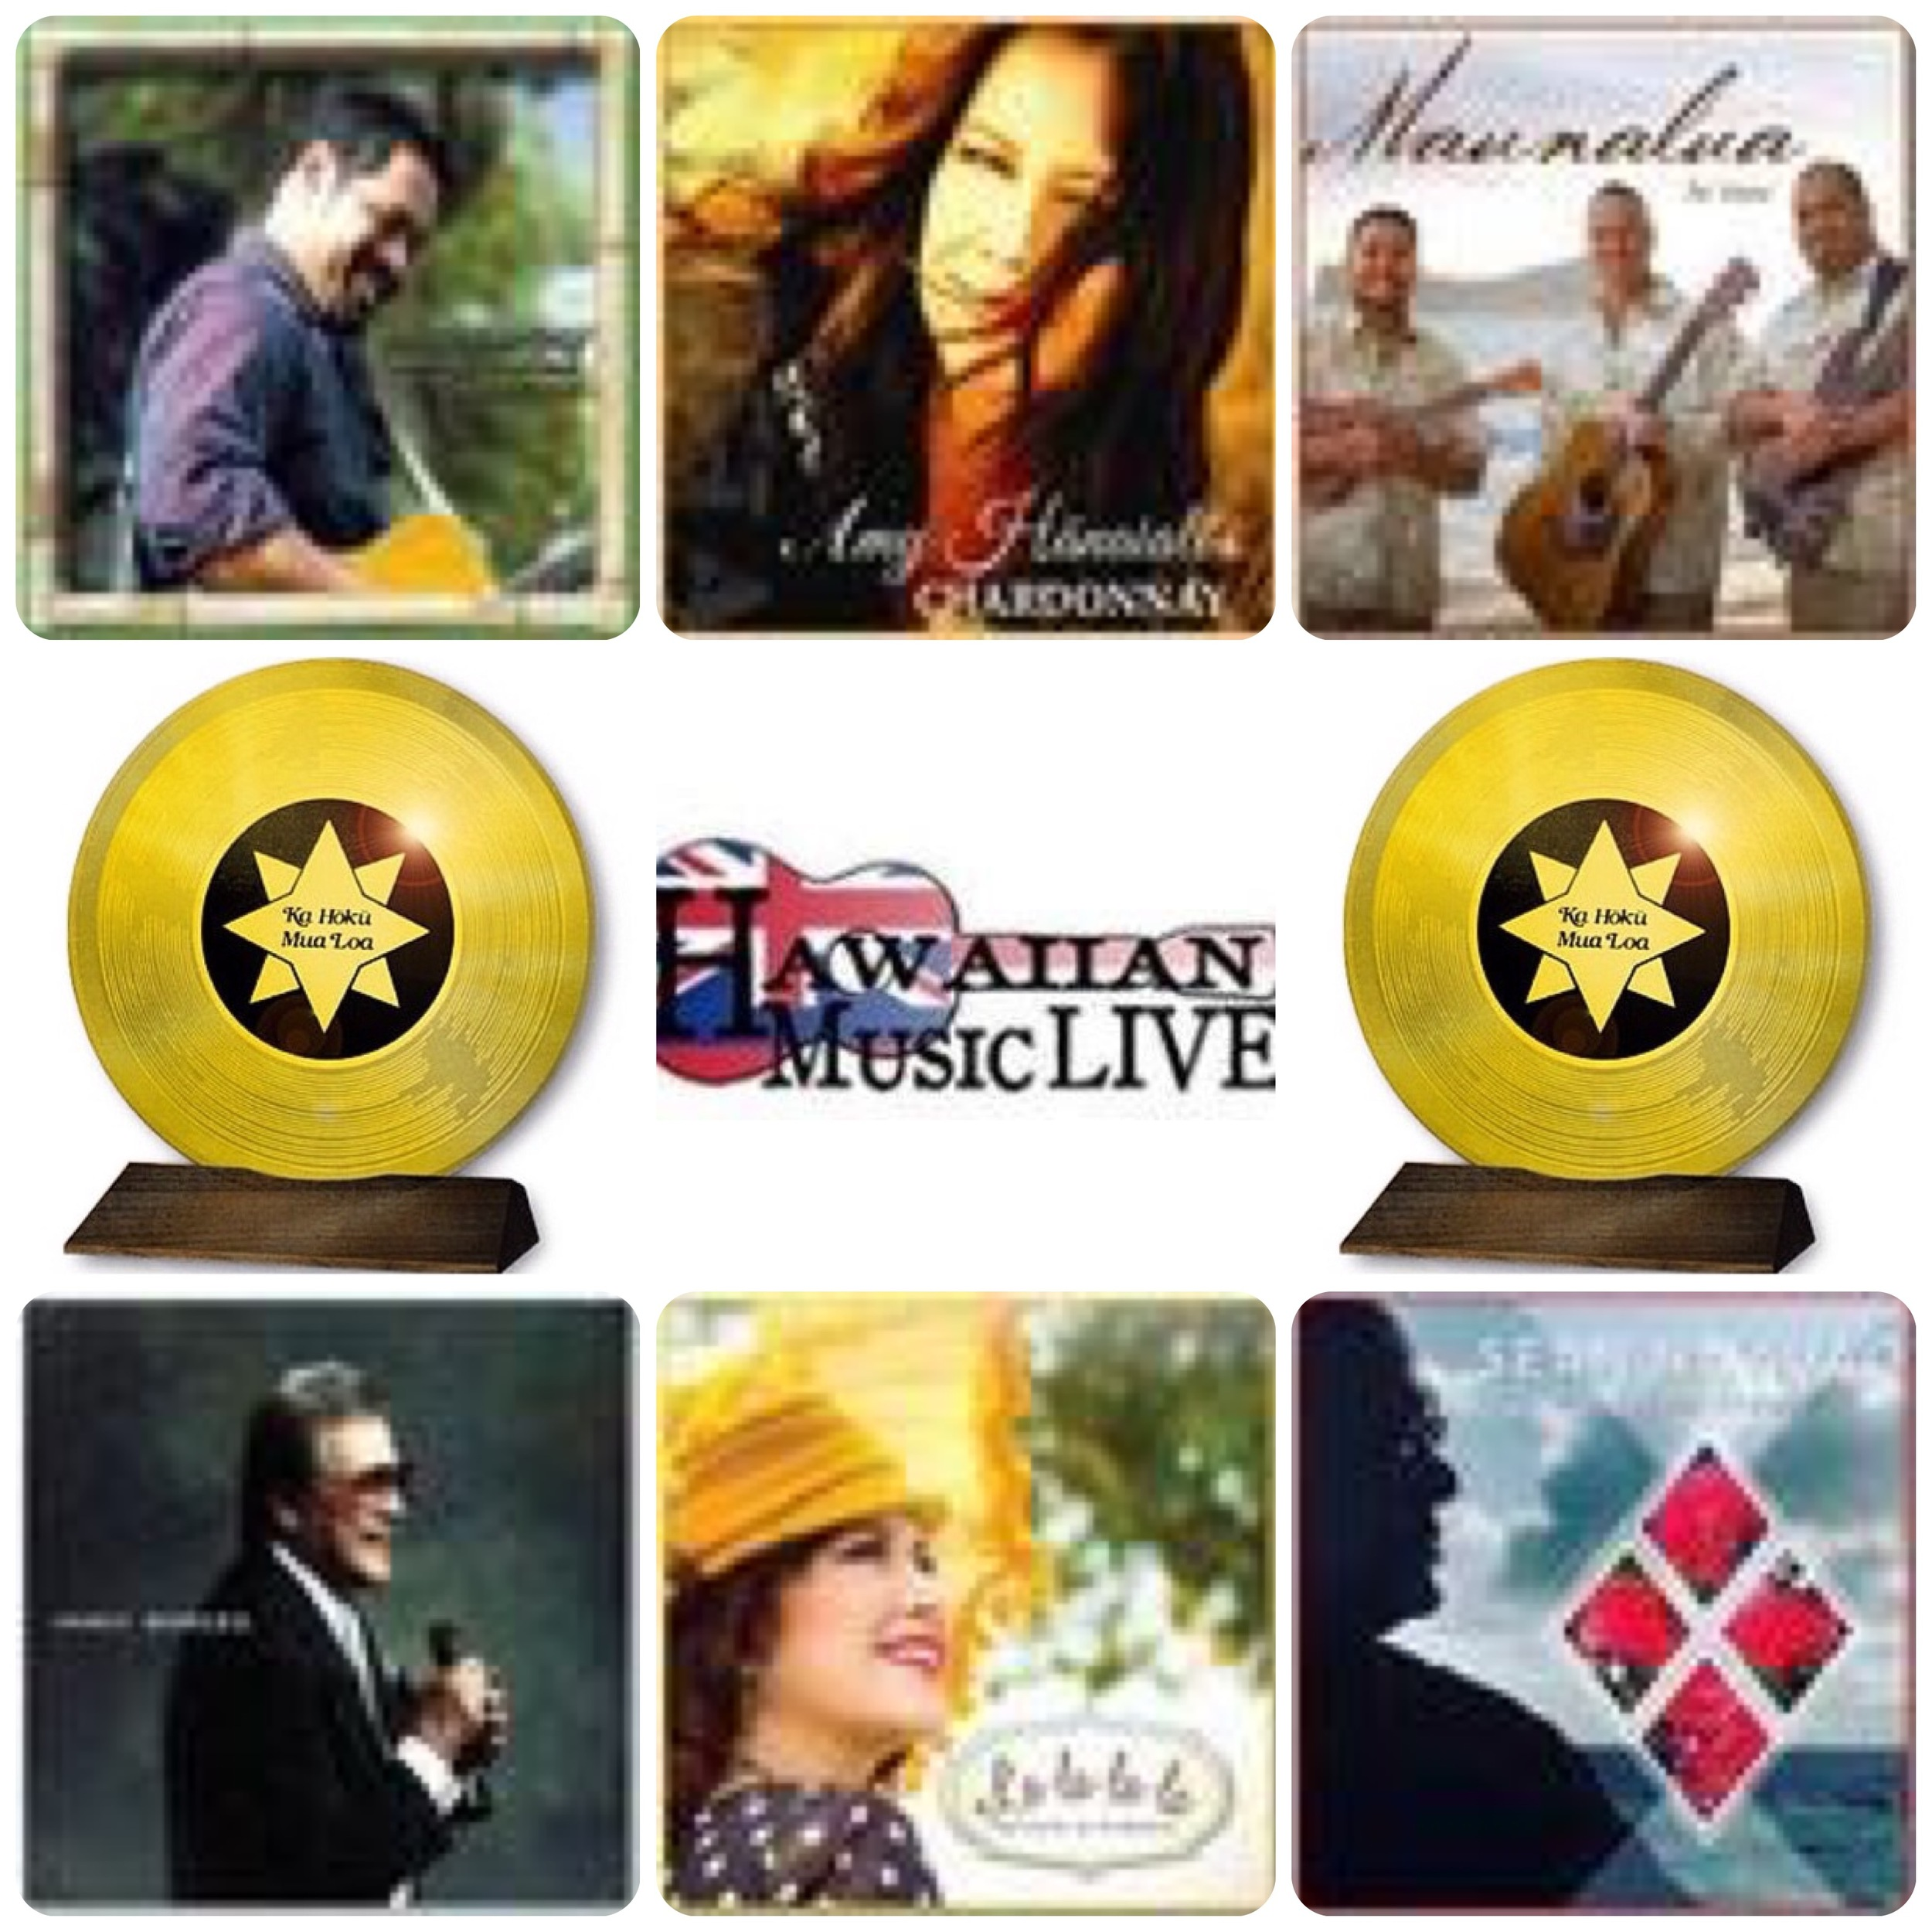 Wishing good luck to the 39th Annual Na Hoku Hanohano Awards Album of the Year nominees: